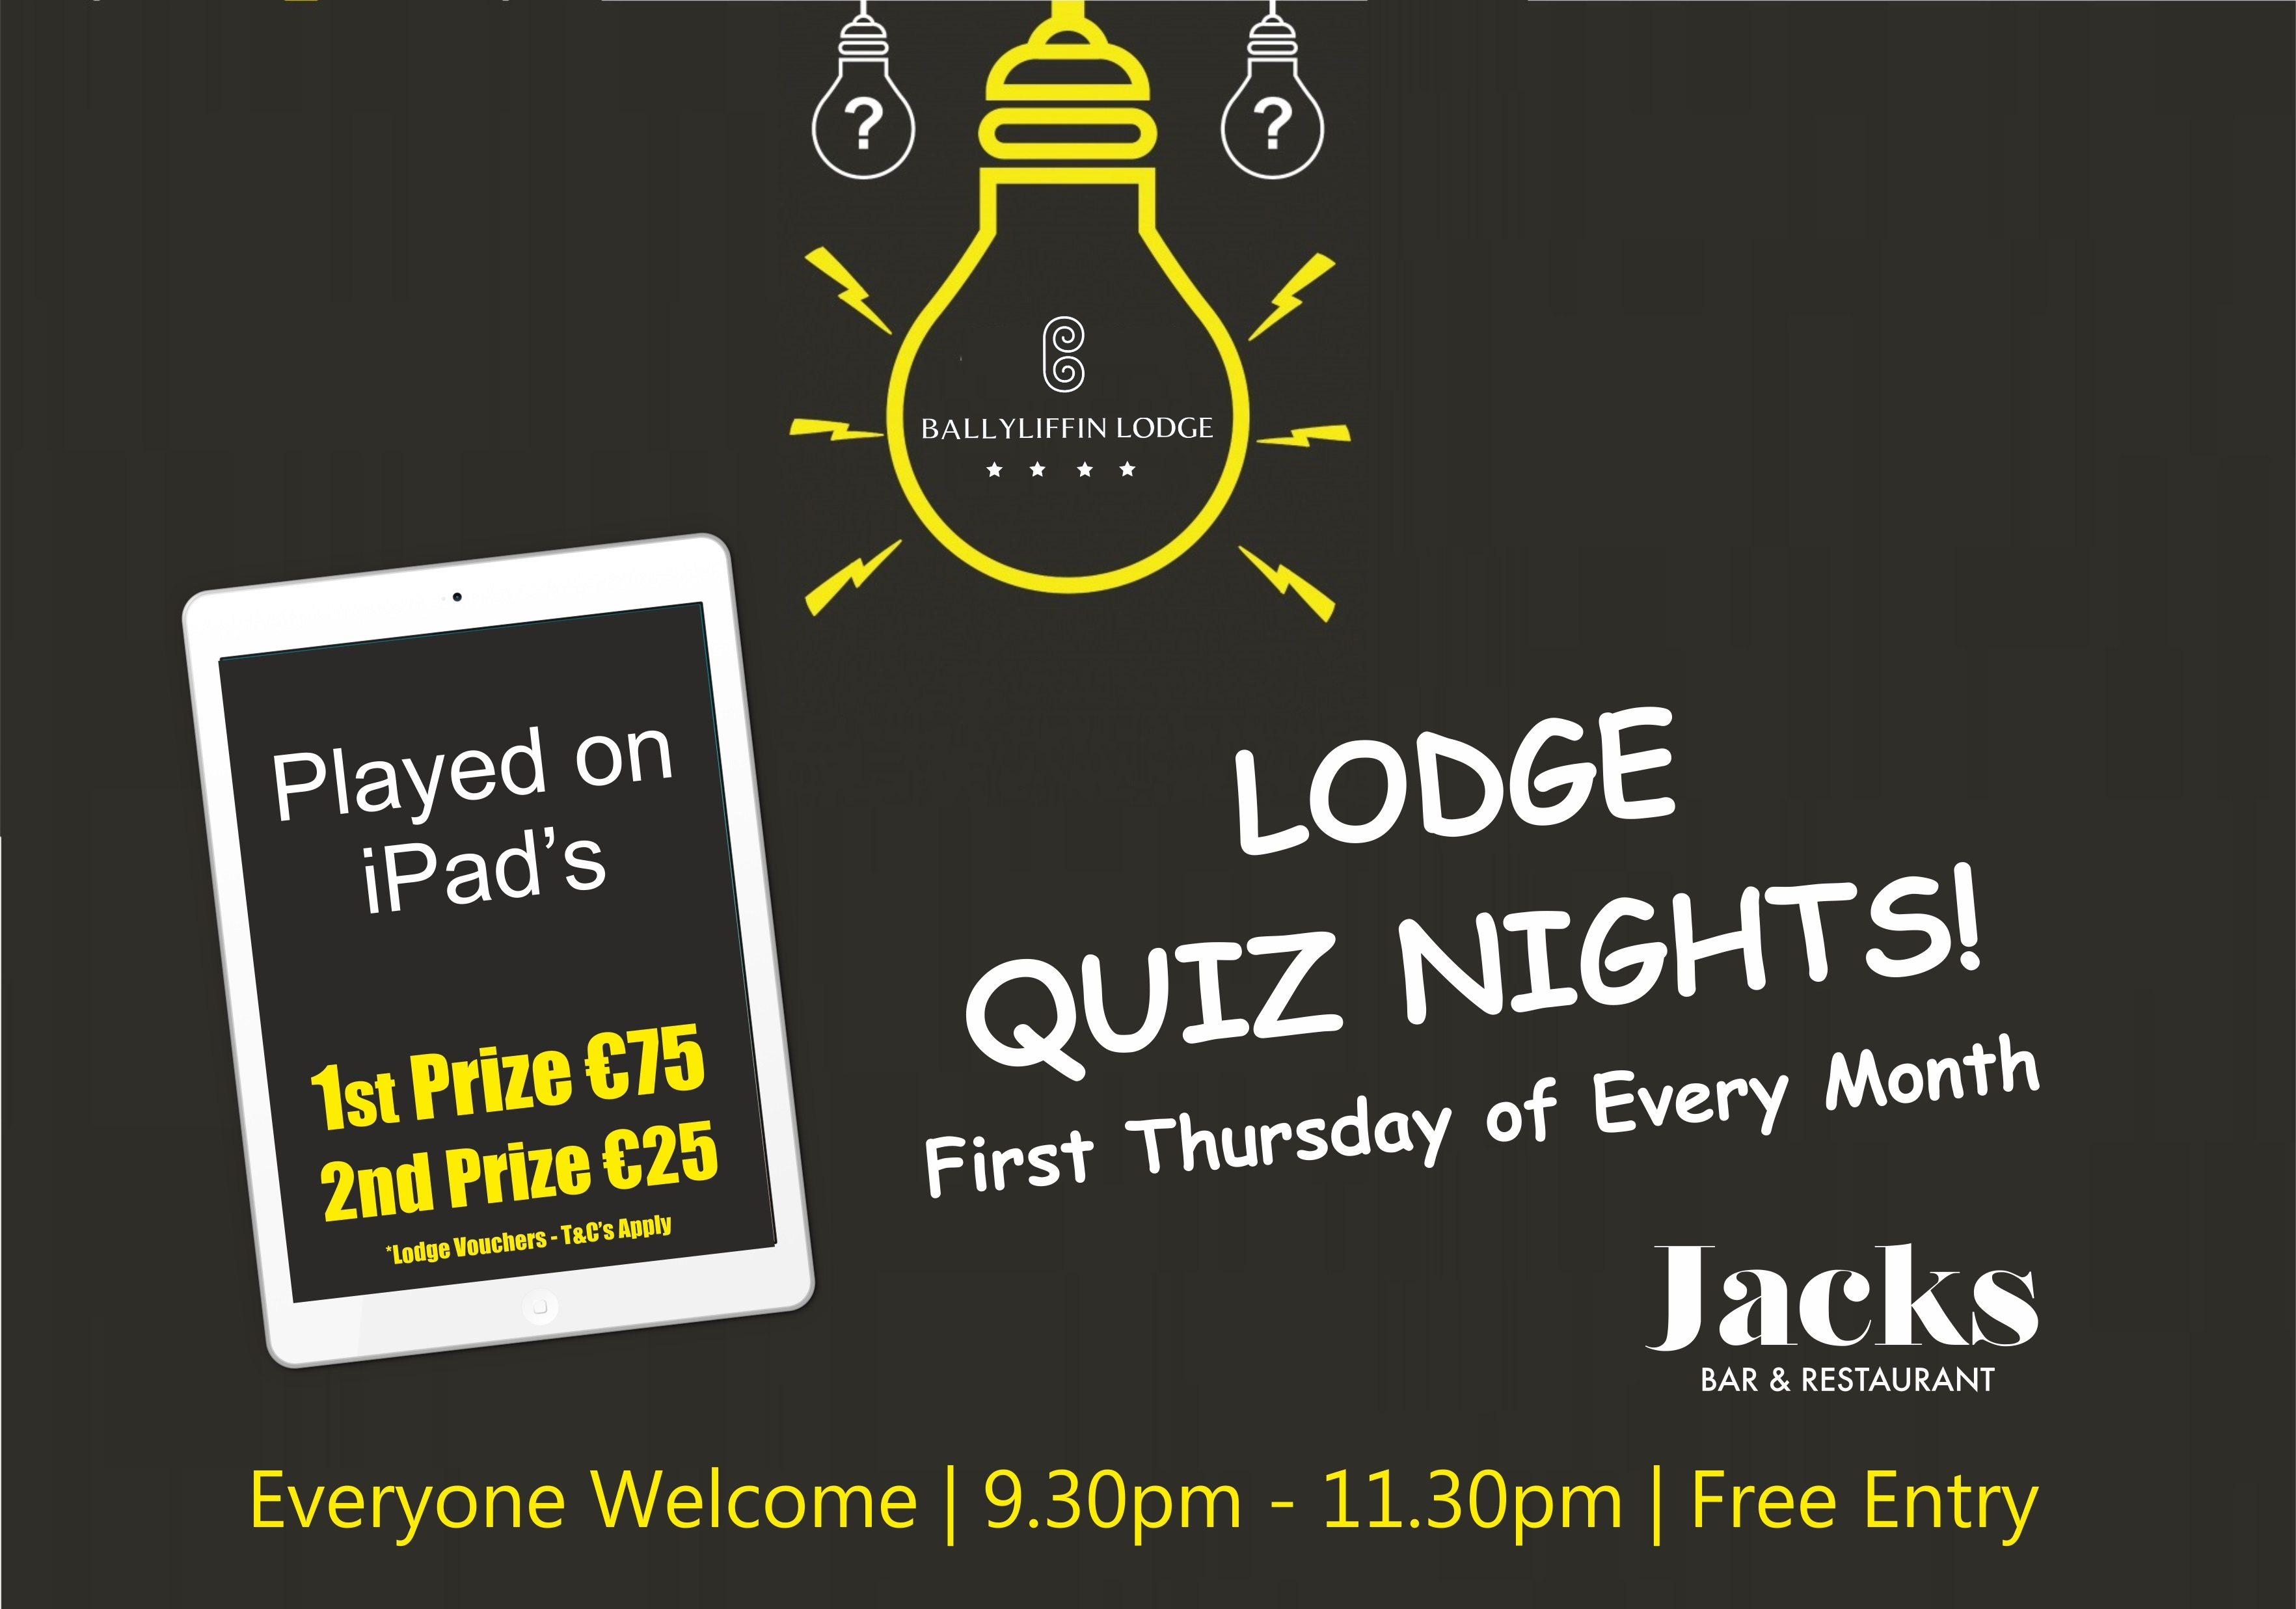 Lodge Quiz Nights